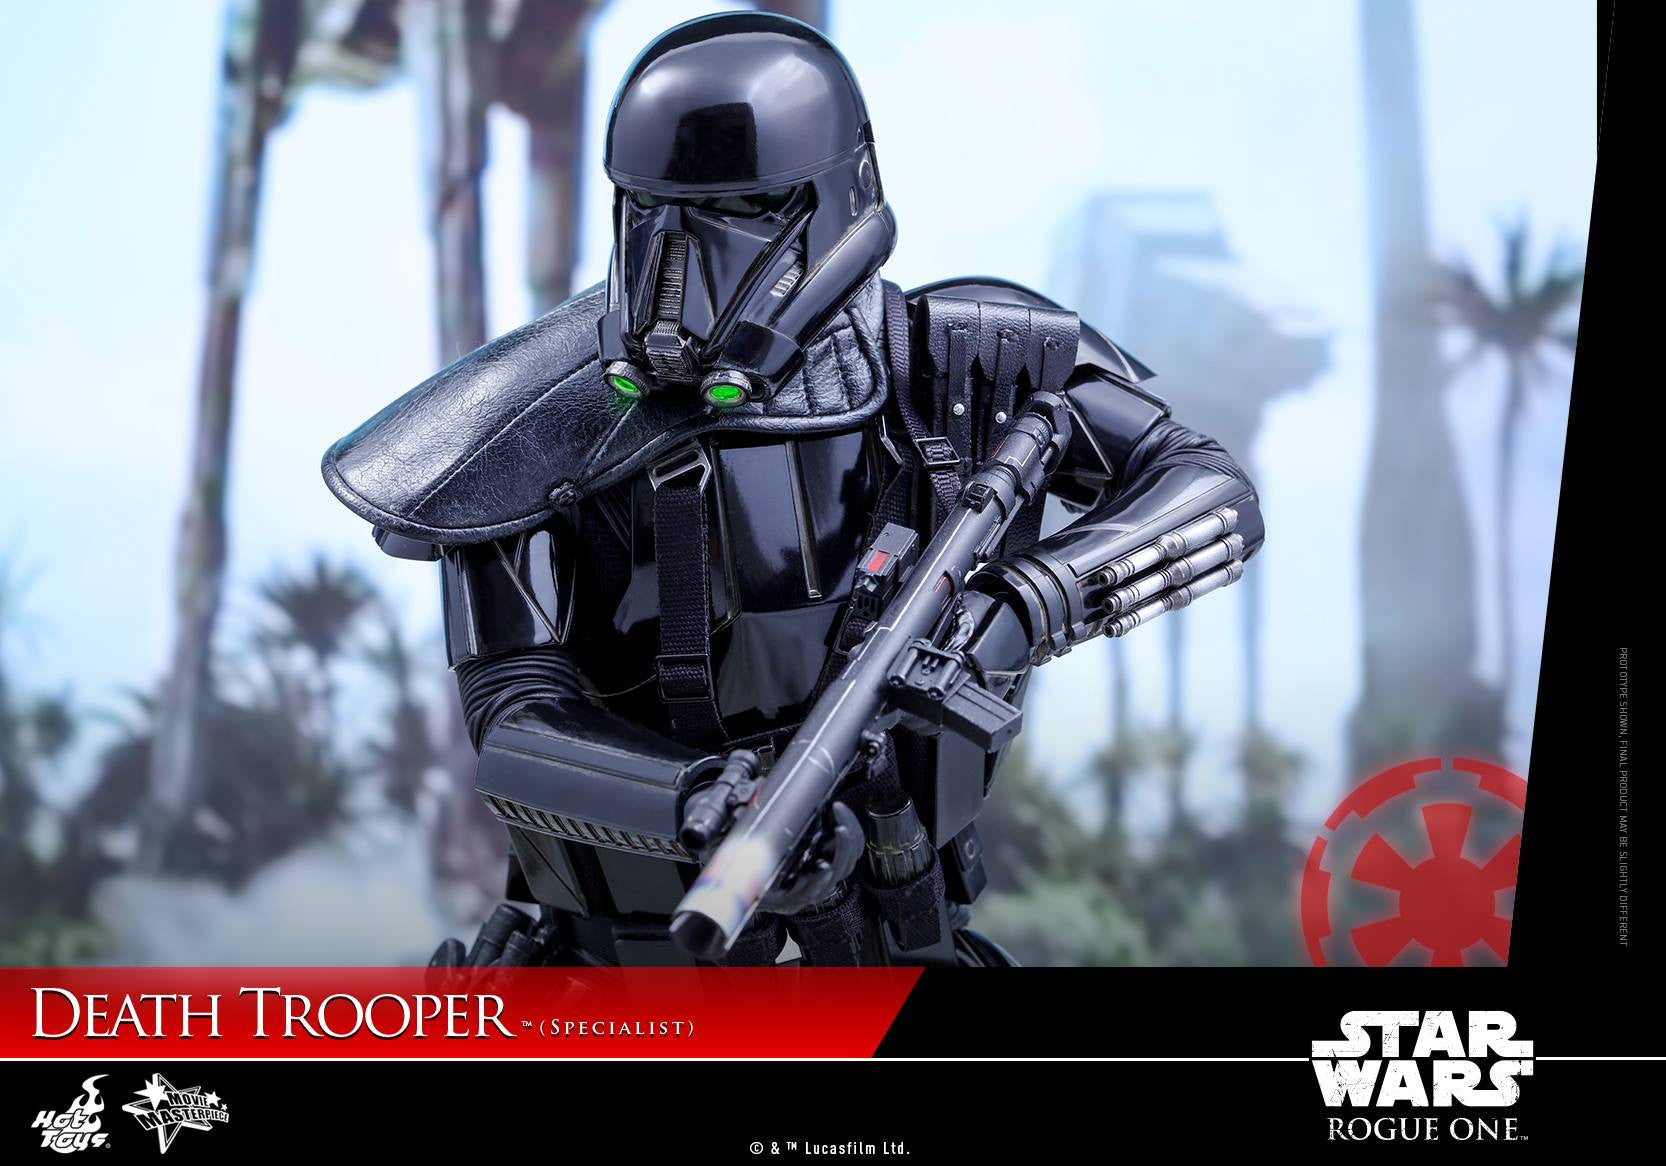 Hot Toys - MMS385 - Rogue One: A Star Wars Story - Death Trooper (Specialist) - Marvelous Toys - 17